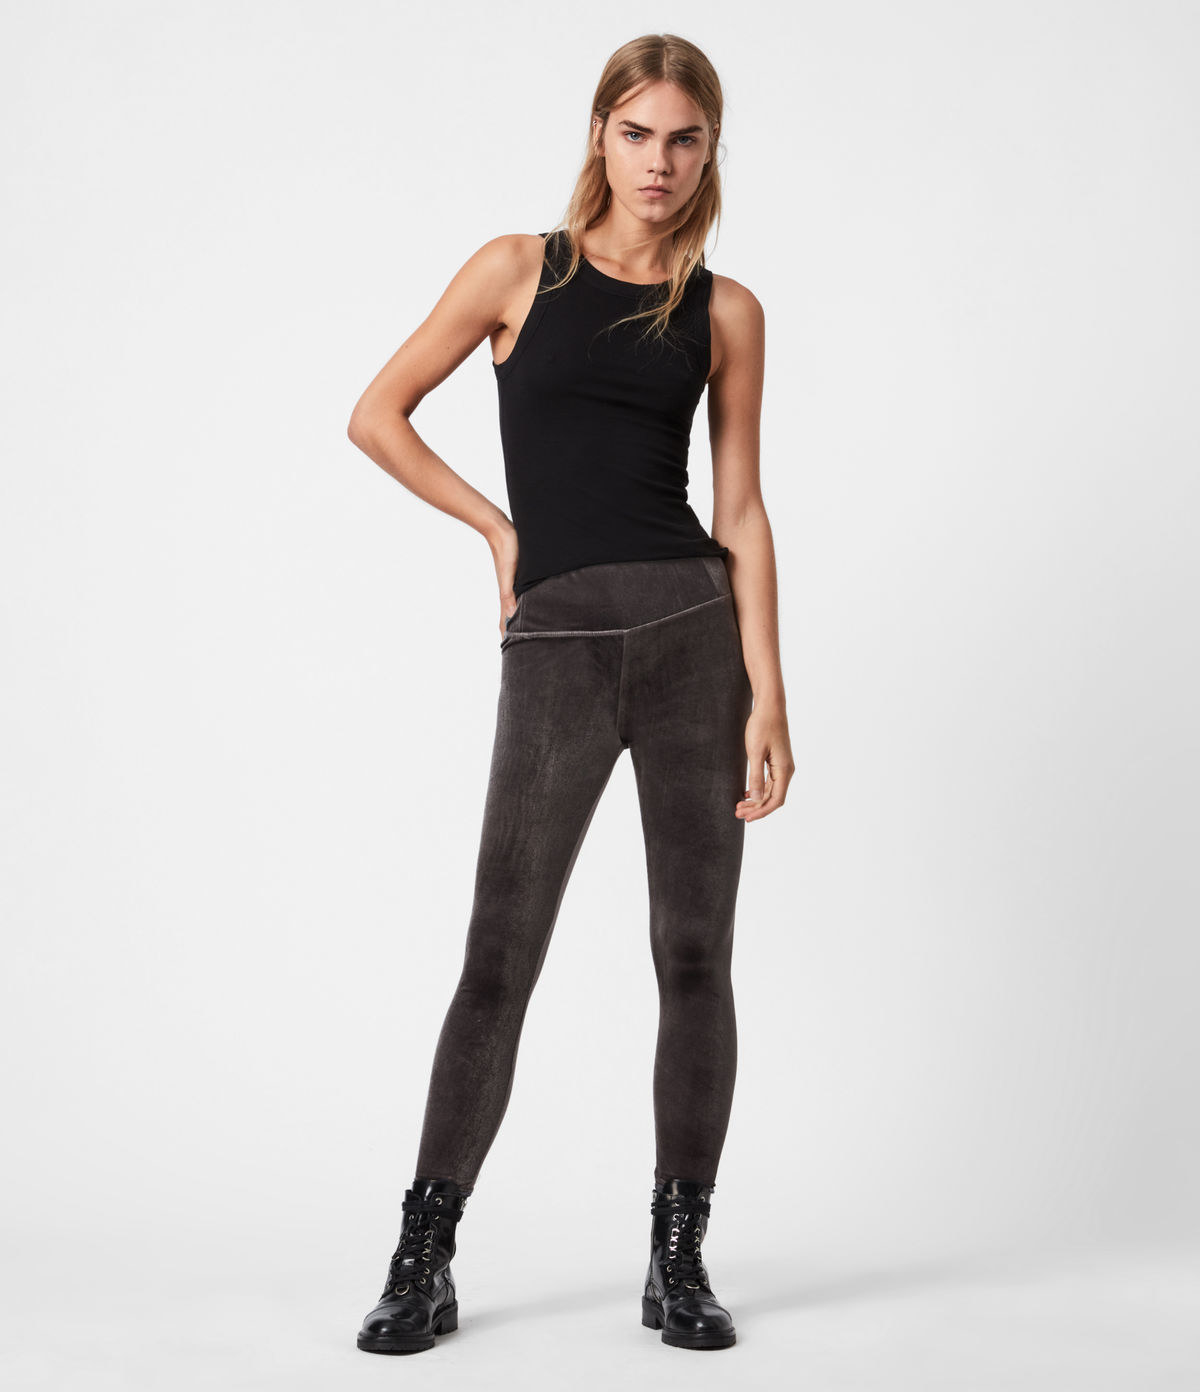 Model wearing black leggings